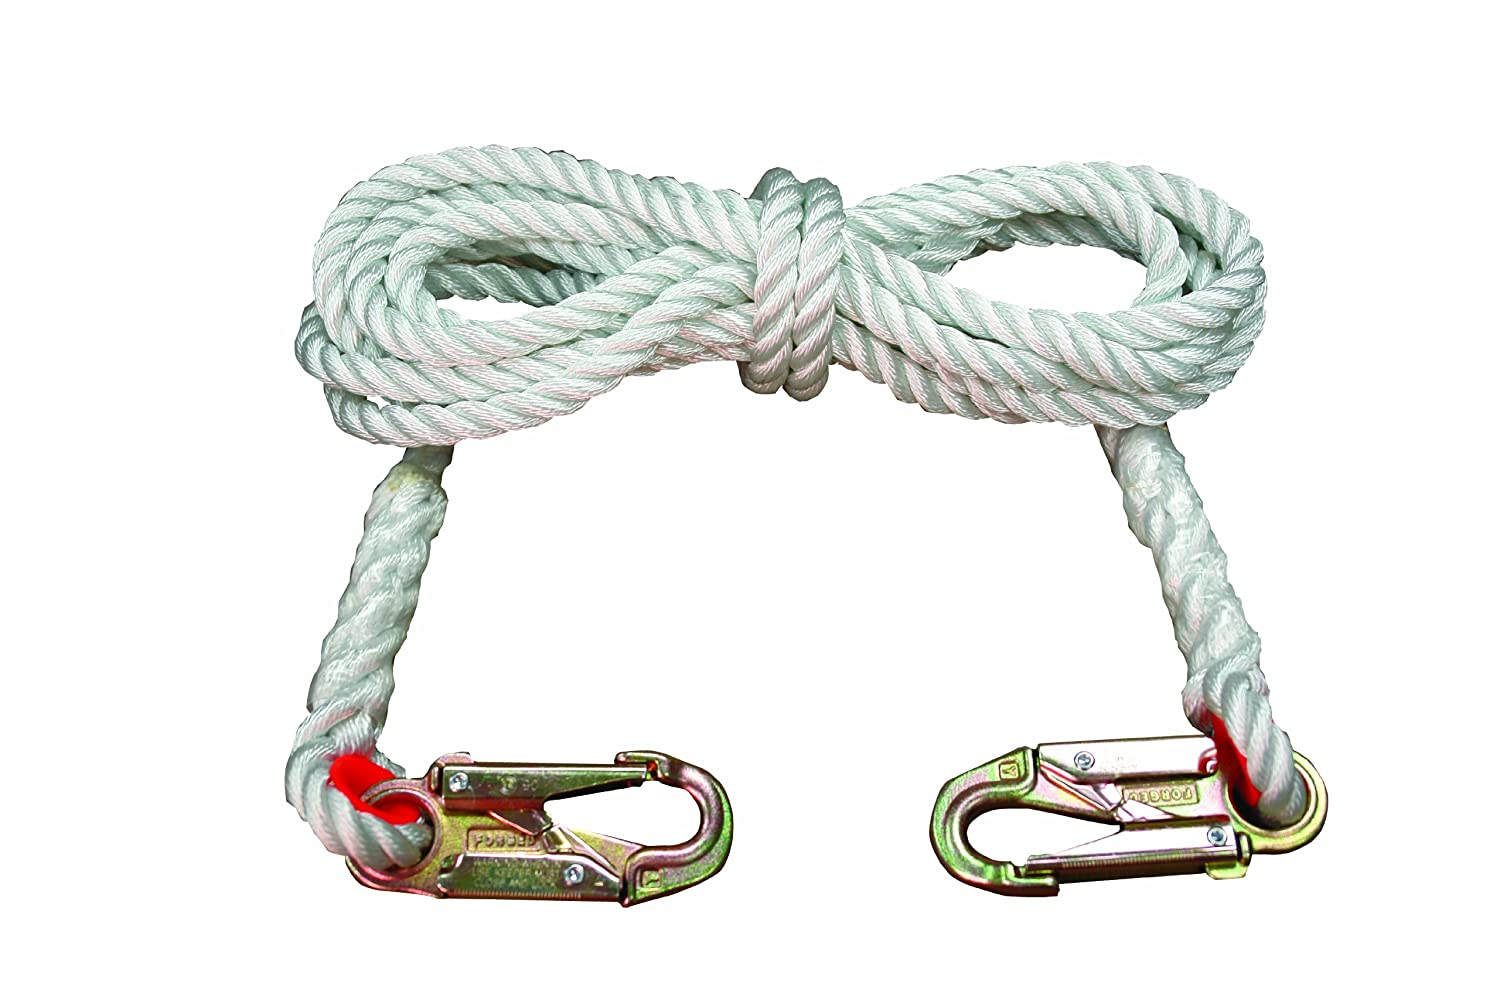 Elk River 34150 Nylon Rope Lifeline with Zsnaphook, 3600 lbs Gate, 5/8